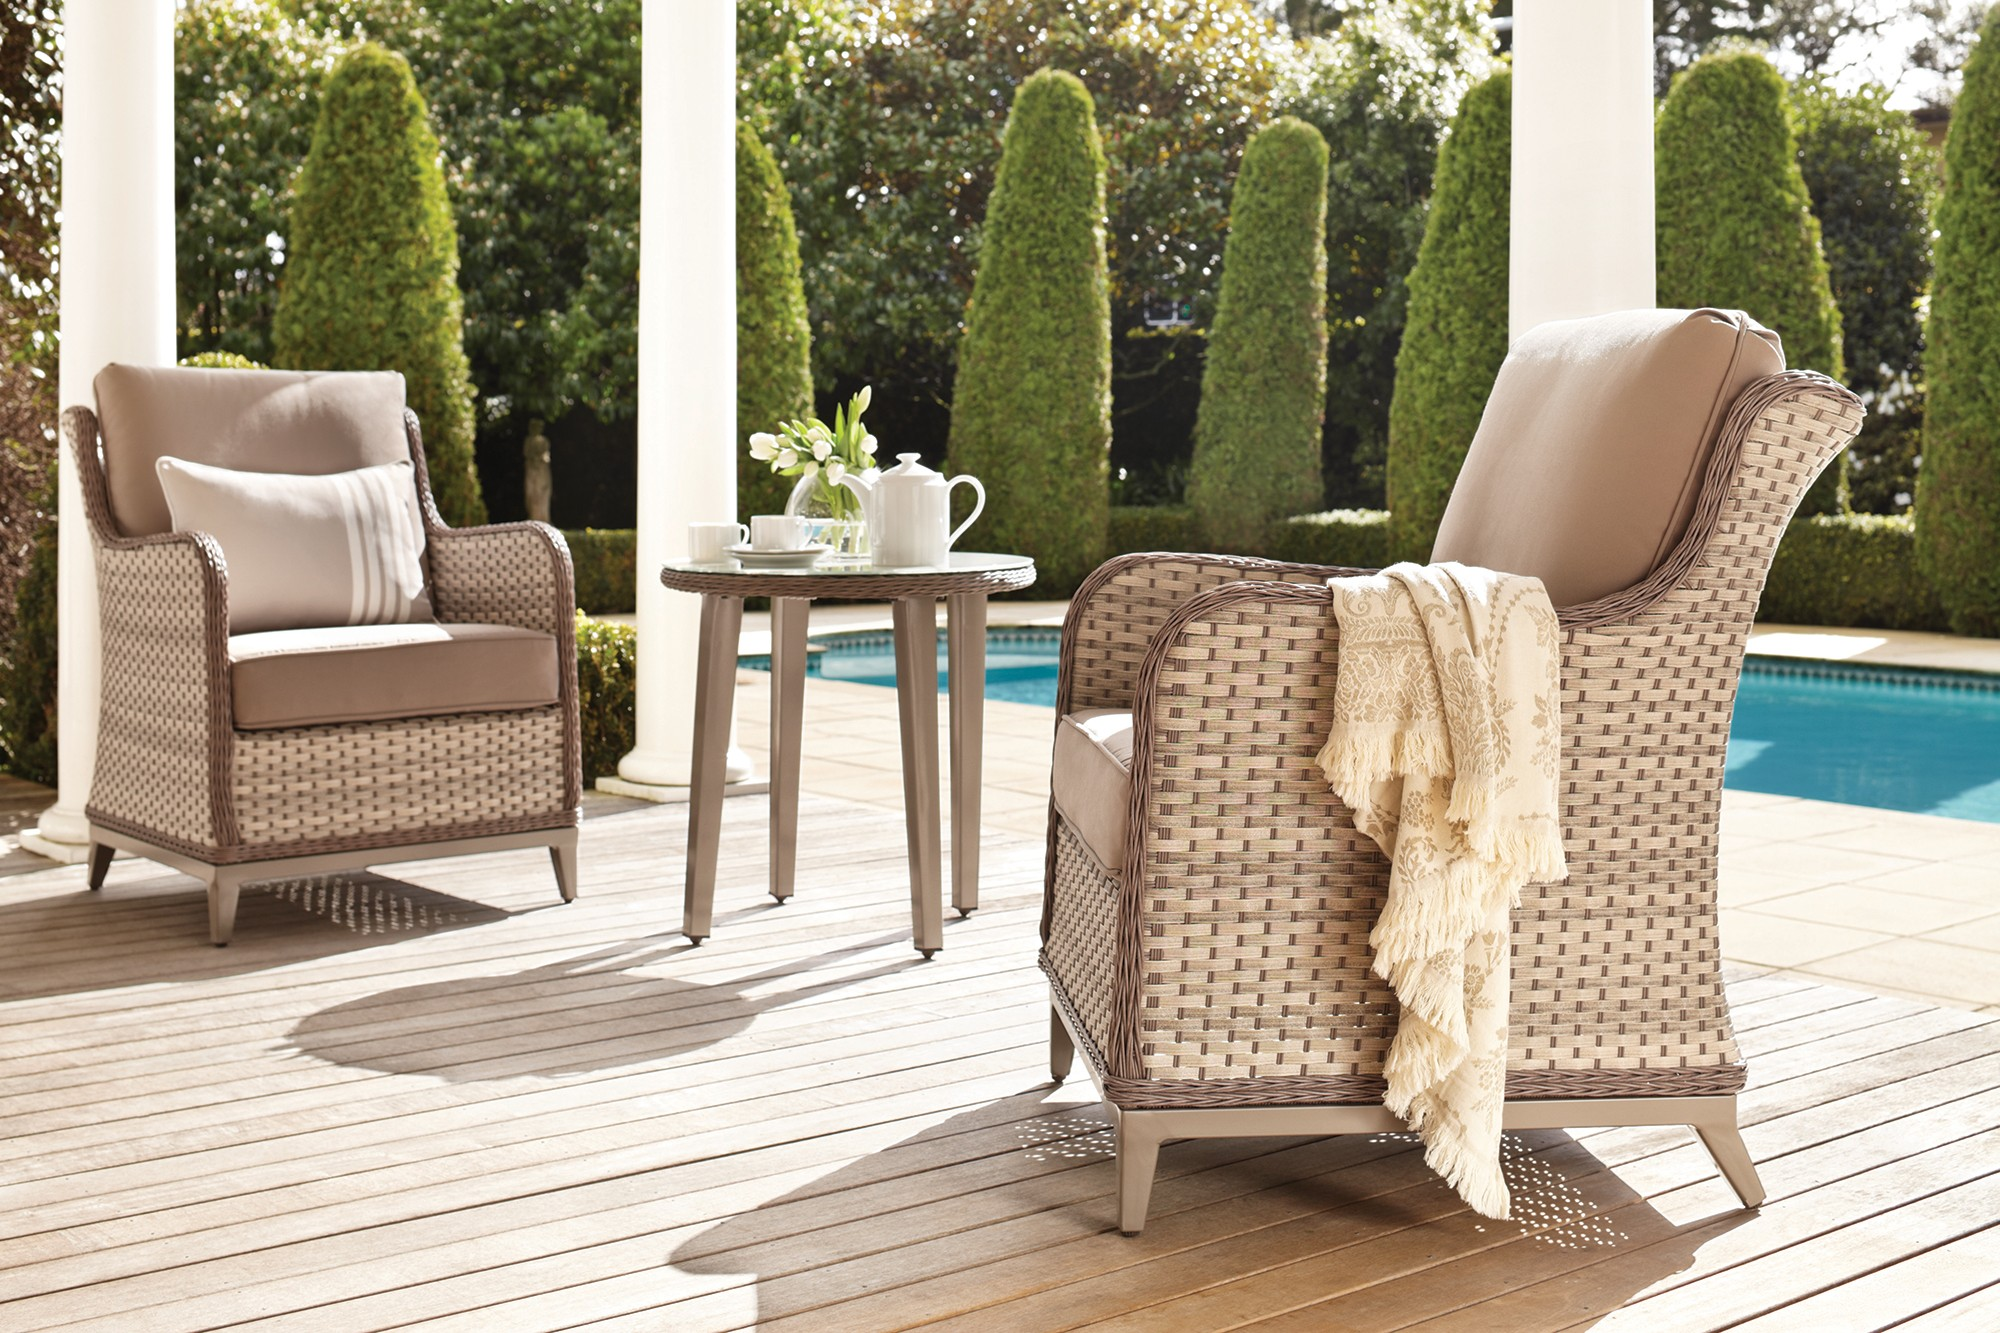 Outdoor Furniture – Cushions Table Chairs Umbrellas & More